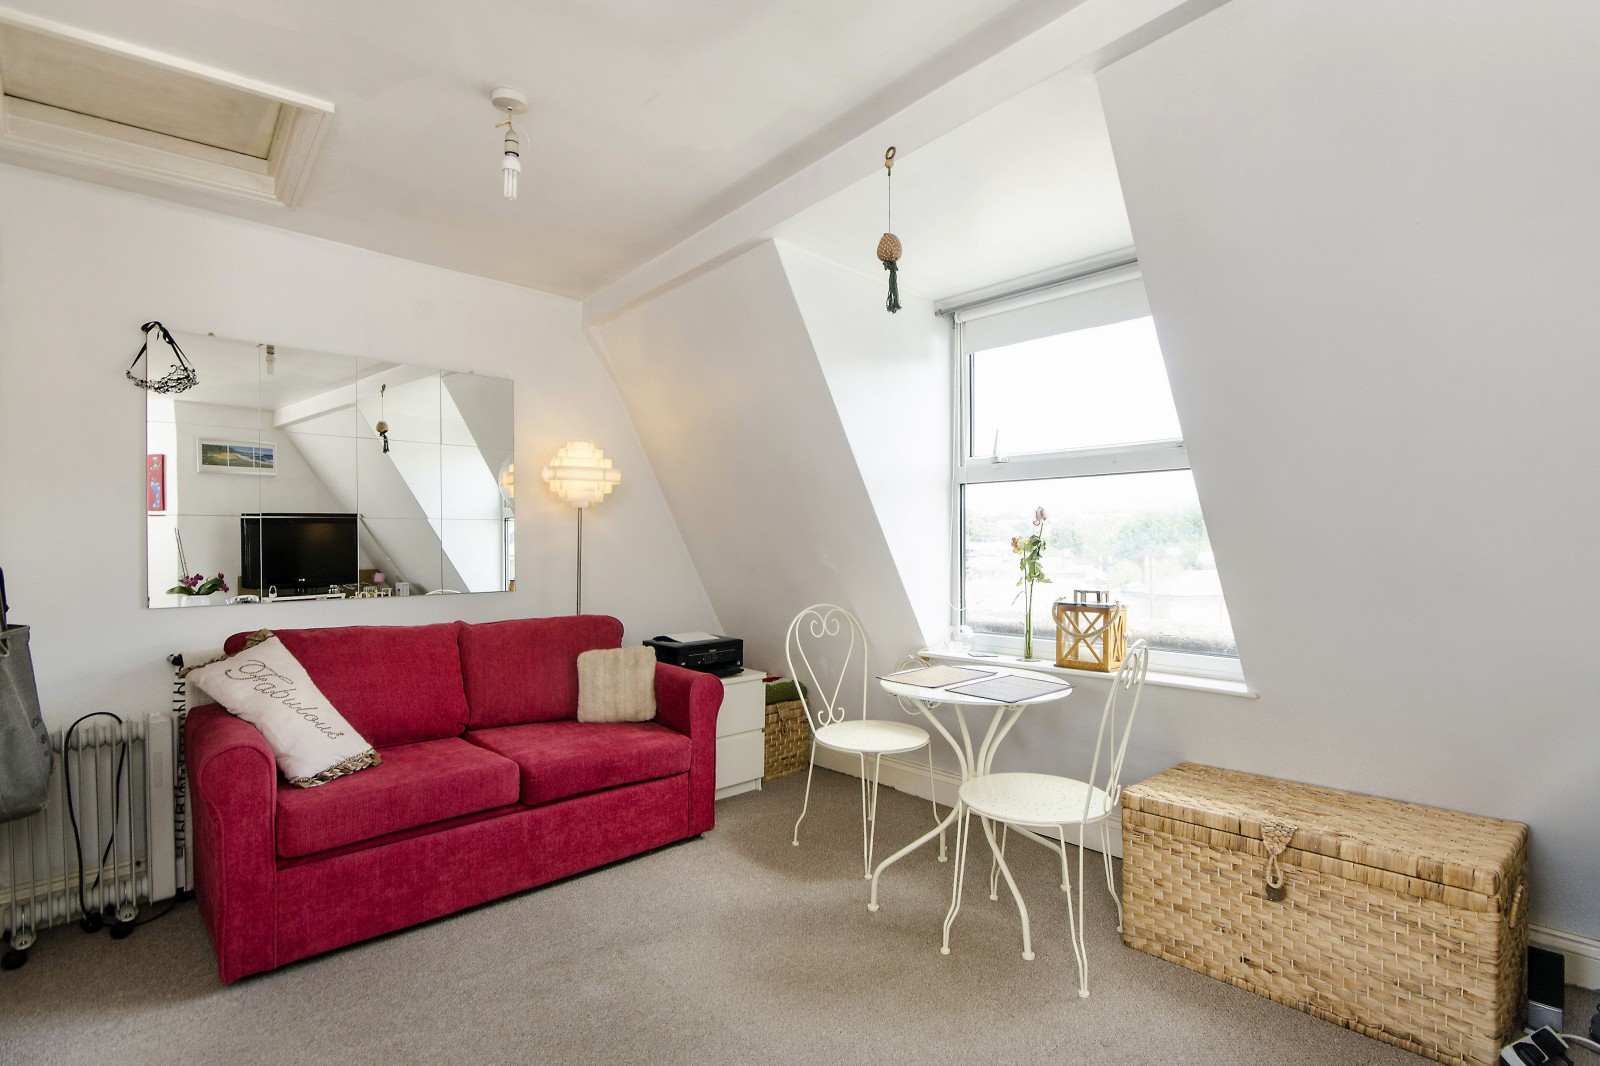 One bedroom flats for sale for under £230,000 - Foxtons ...